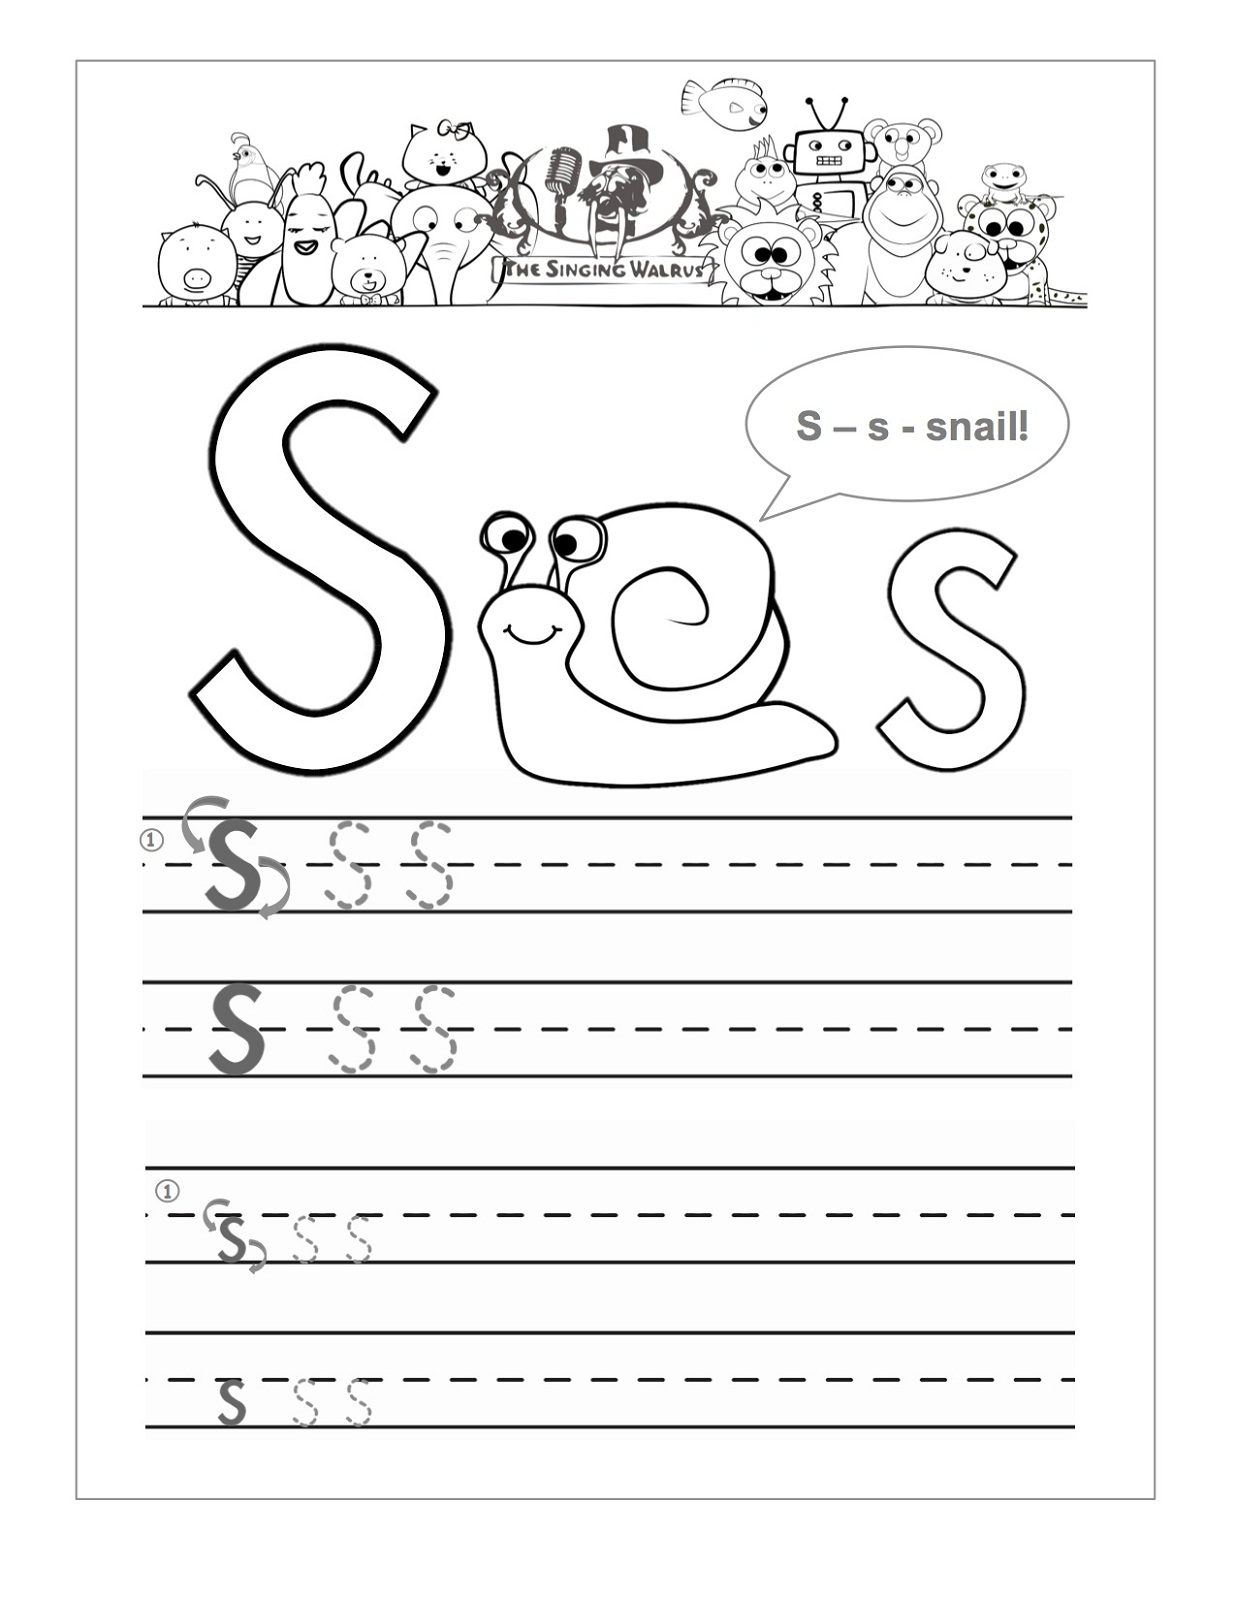 image relating to Printable Letter S referred to as Letter S Worksheets Printable Match Shelter